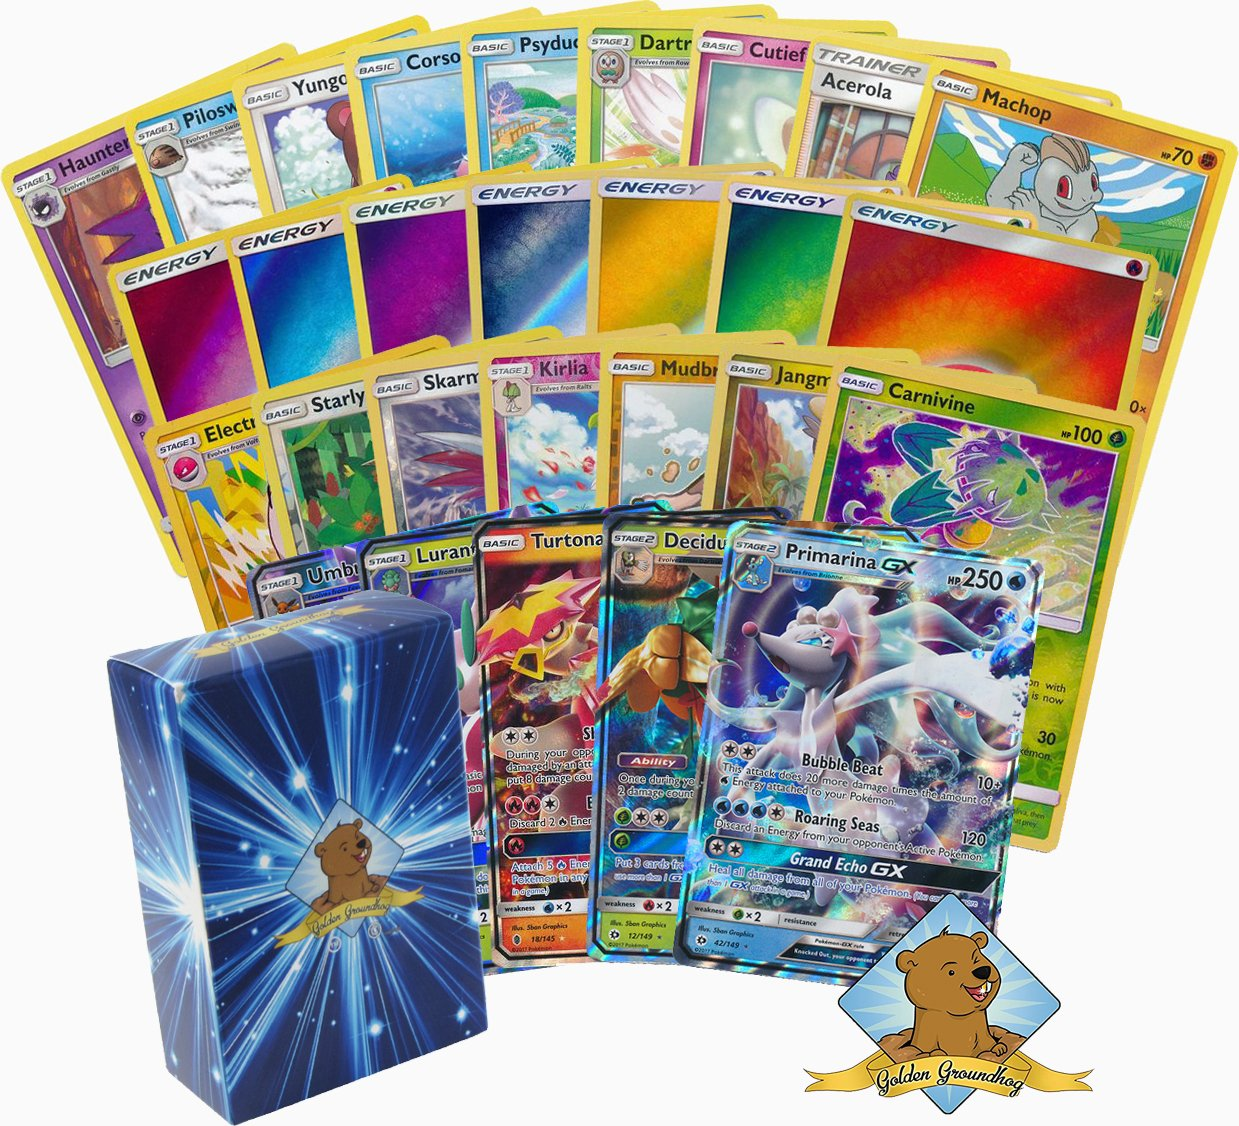 150 Random Pokemon Card Lot! 100 Pokemon Cards – GX & Foils – 50 Energy Cards – Pokemon Coin! Includes Golden Groundhog Deck Box! GoldenGroundhog